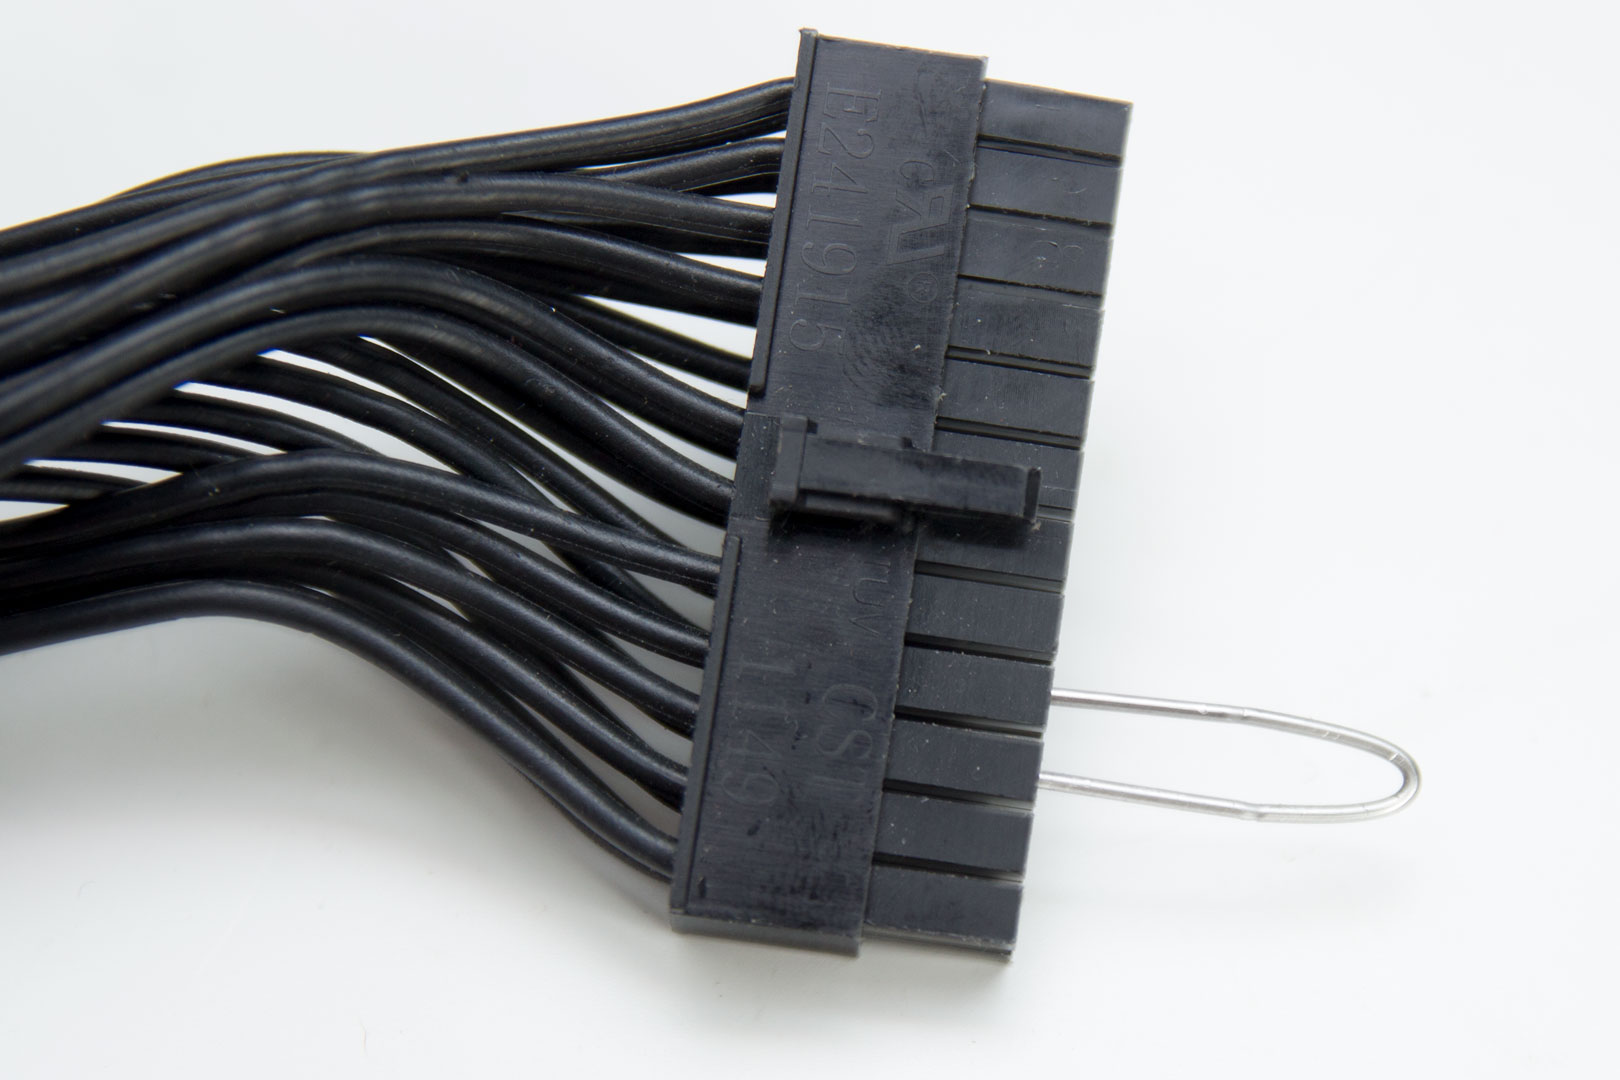 hight resolution of now you simply put the wire into the 24 pin connector that comes from your psu you must connect the wire to the fourth pin from the left when you looking